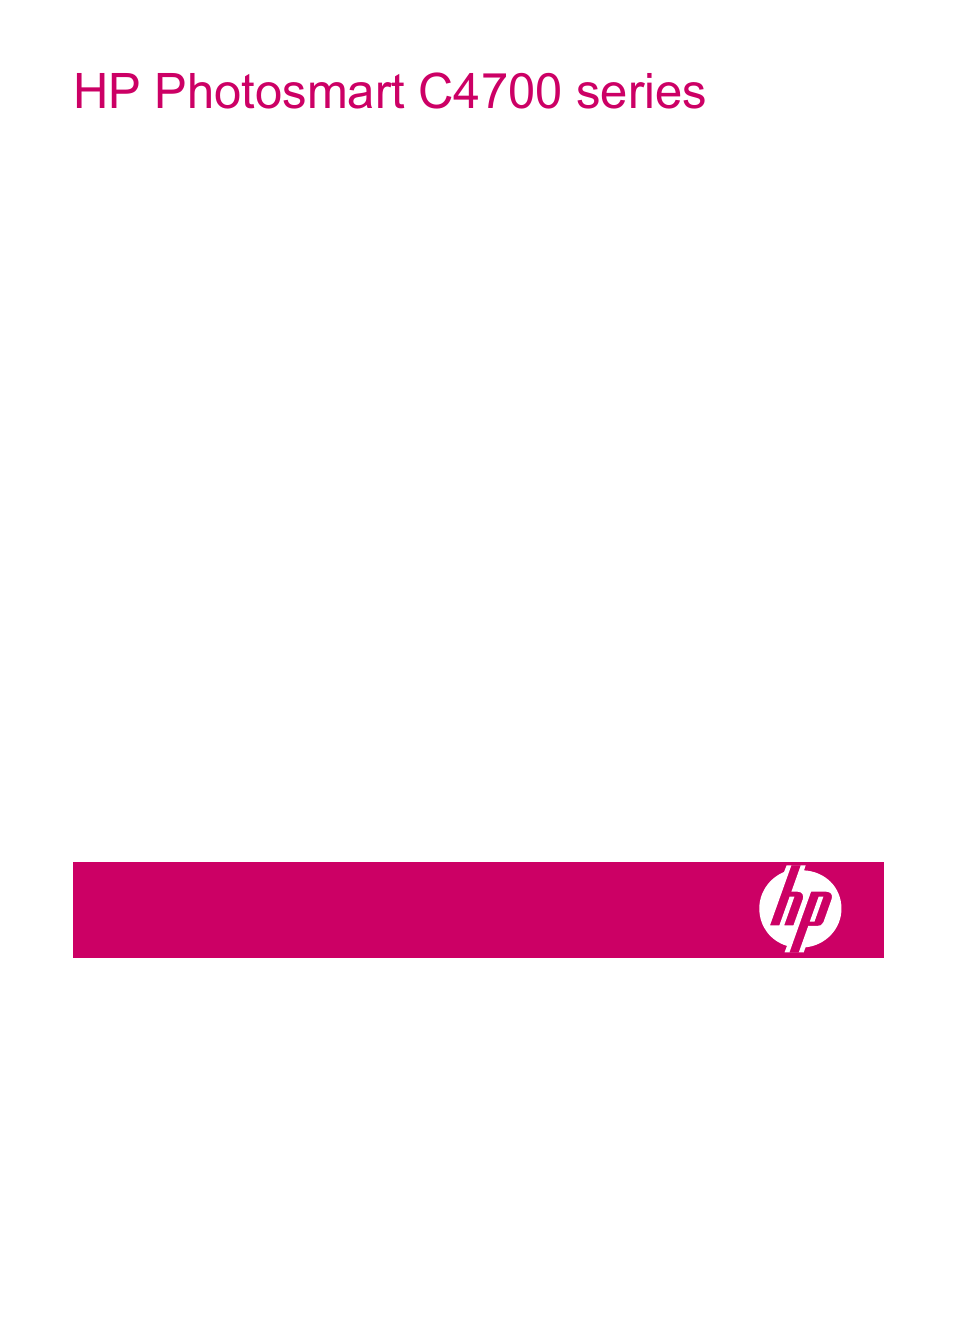 HP Photosmart C4780 User Manual | 120 pages | Also for